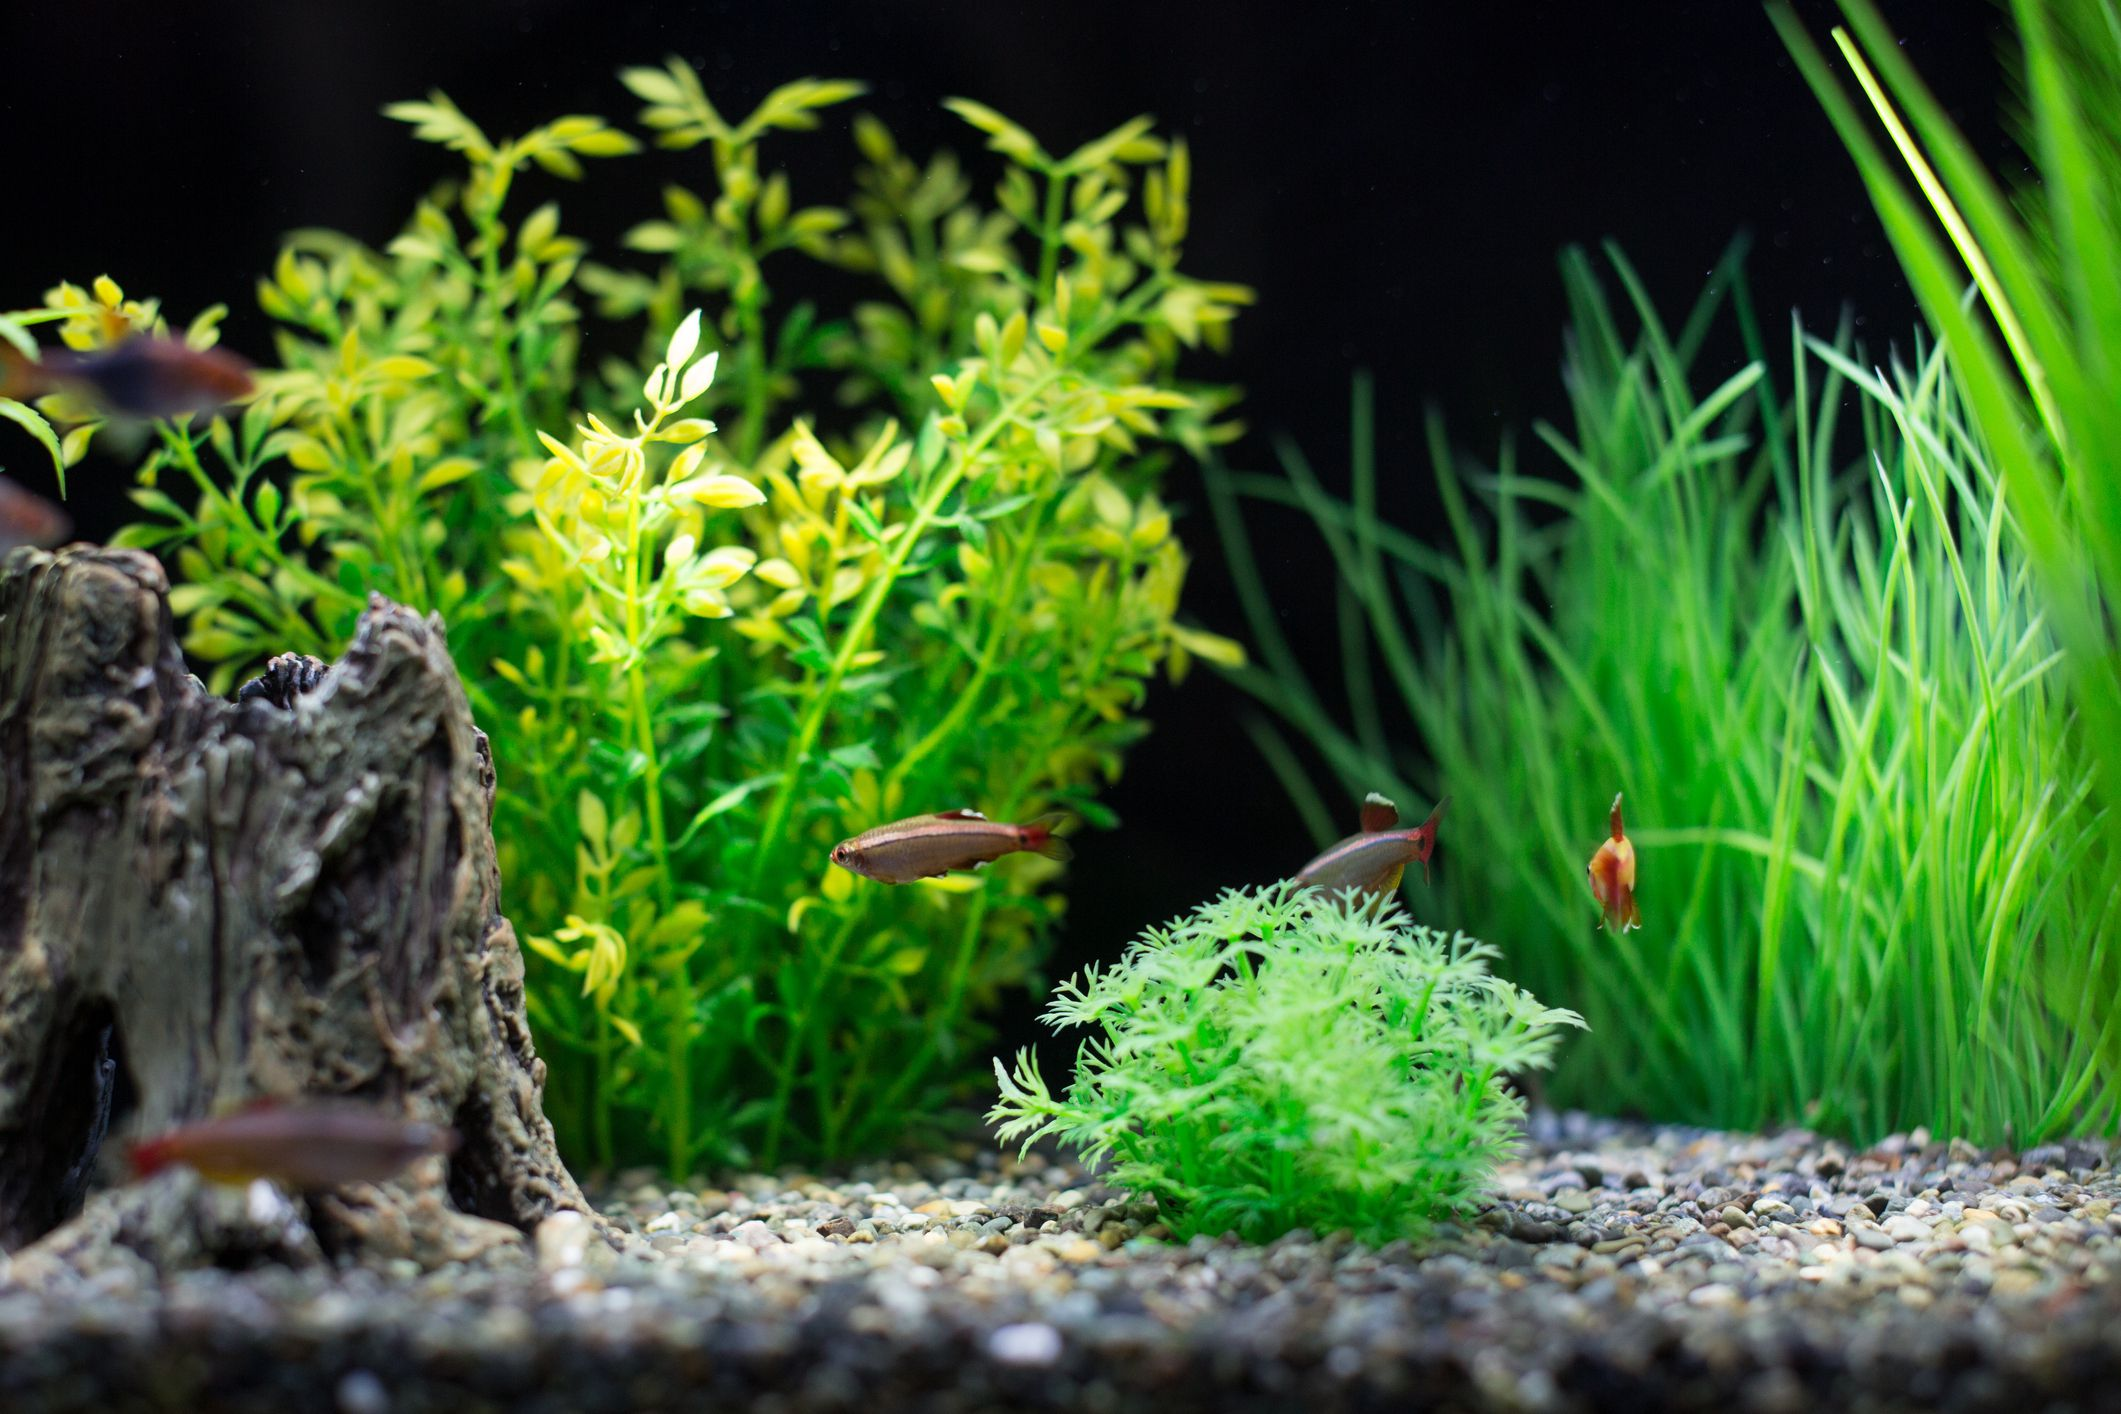 Problems With Tap Water in Saltwater Aquariums